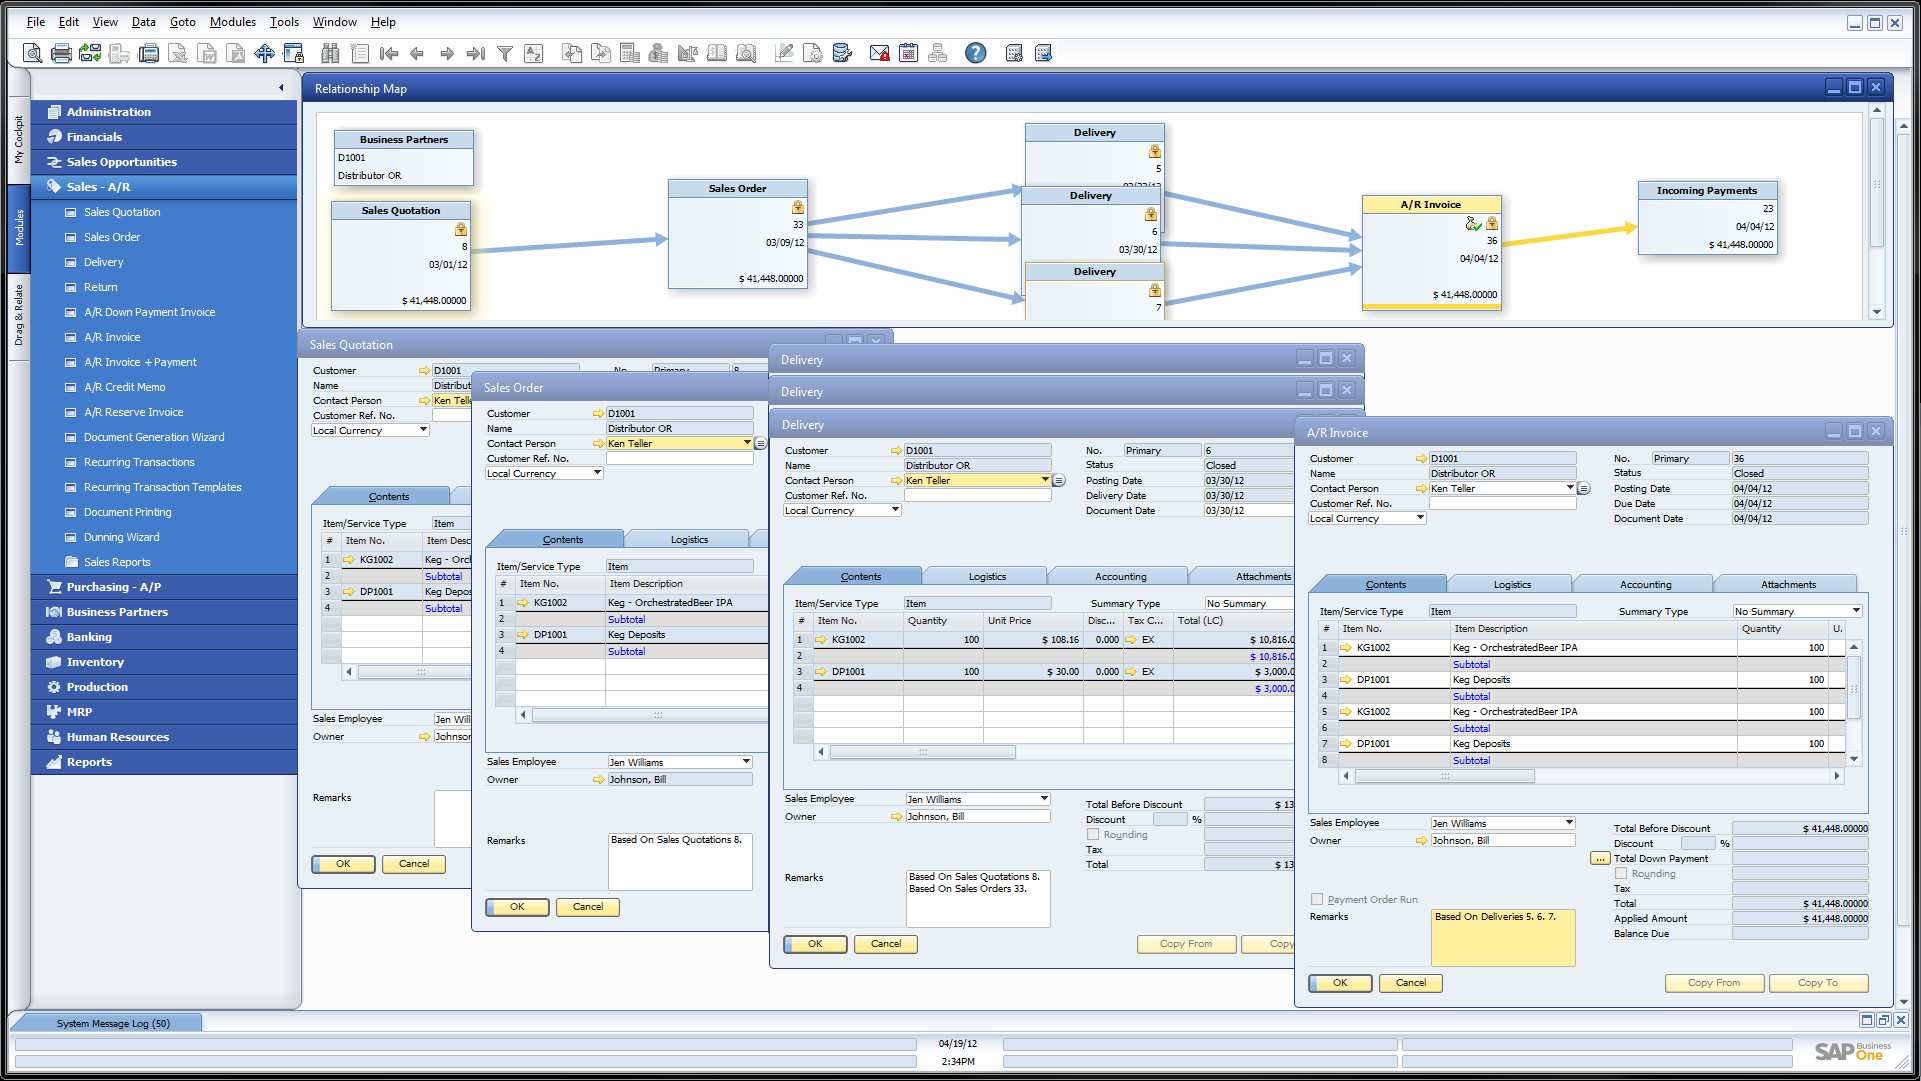 Brewery management software webinar series orchestratedbeer for Brewery floor plan software